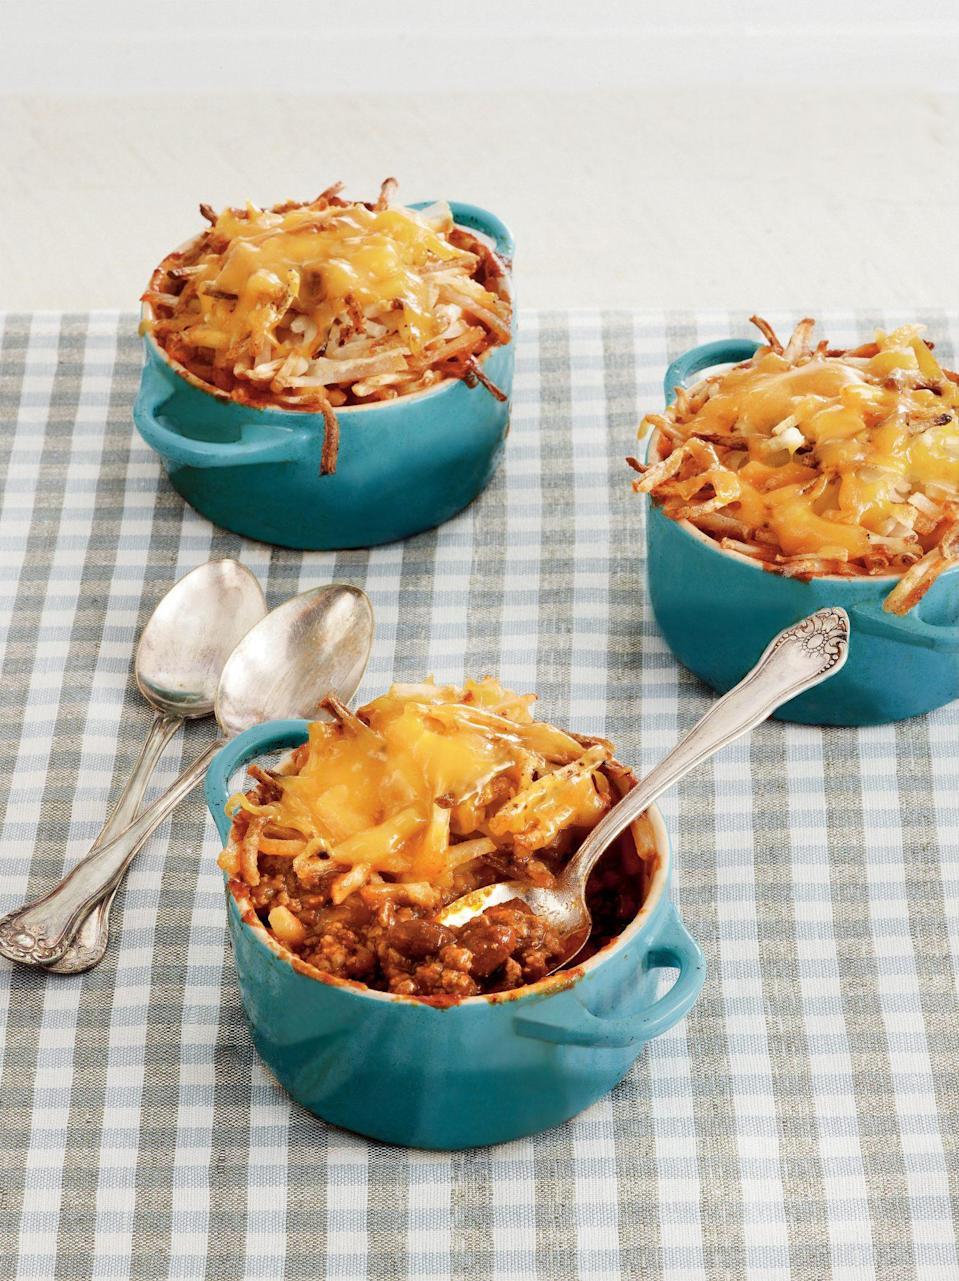 """<p><strong>Recipe: <a href=""""https://www.southernliving.com/recipes/cheesy-chili-hash-brown-bake-recipe"""" rel=""""nofollow noopener"""" target=""""_blank"""" data-ylk=""""slk:Cheesy Chili Hash Brown Bake"""" class=""""link rapid-noclick-resp"""">Cheesy Chili Hash Brown Bake</a></strong></p> <p>Store-bought shortcuts like a <a href=""""https://www.southernliving.com/veggies/potatoes/frozen-potato-recipes"""" rel=""""nofollow noopener"""" target=""""_blank"""" data-ylk=""""slk:bag of frozen potatoes"""" class=""""link rapid-noclick-resp"""">bag of frozen potatoes</a> can come in handy on busy nights, and this recipe only has four other easy ingredients. You can bake this hearty casserole in your 13x9 or individual ramekins for easy personal serving sizes.</p>"""